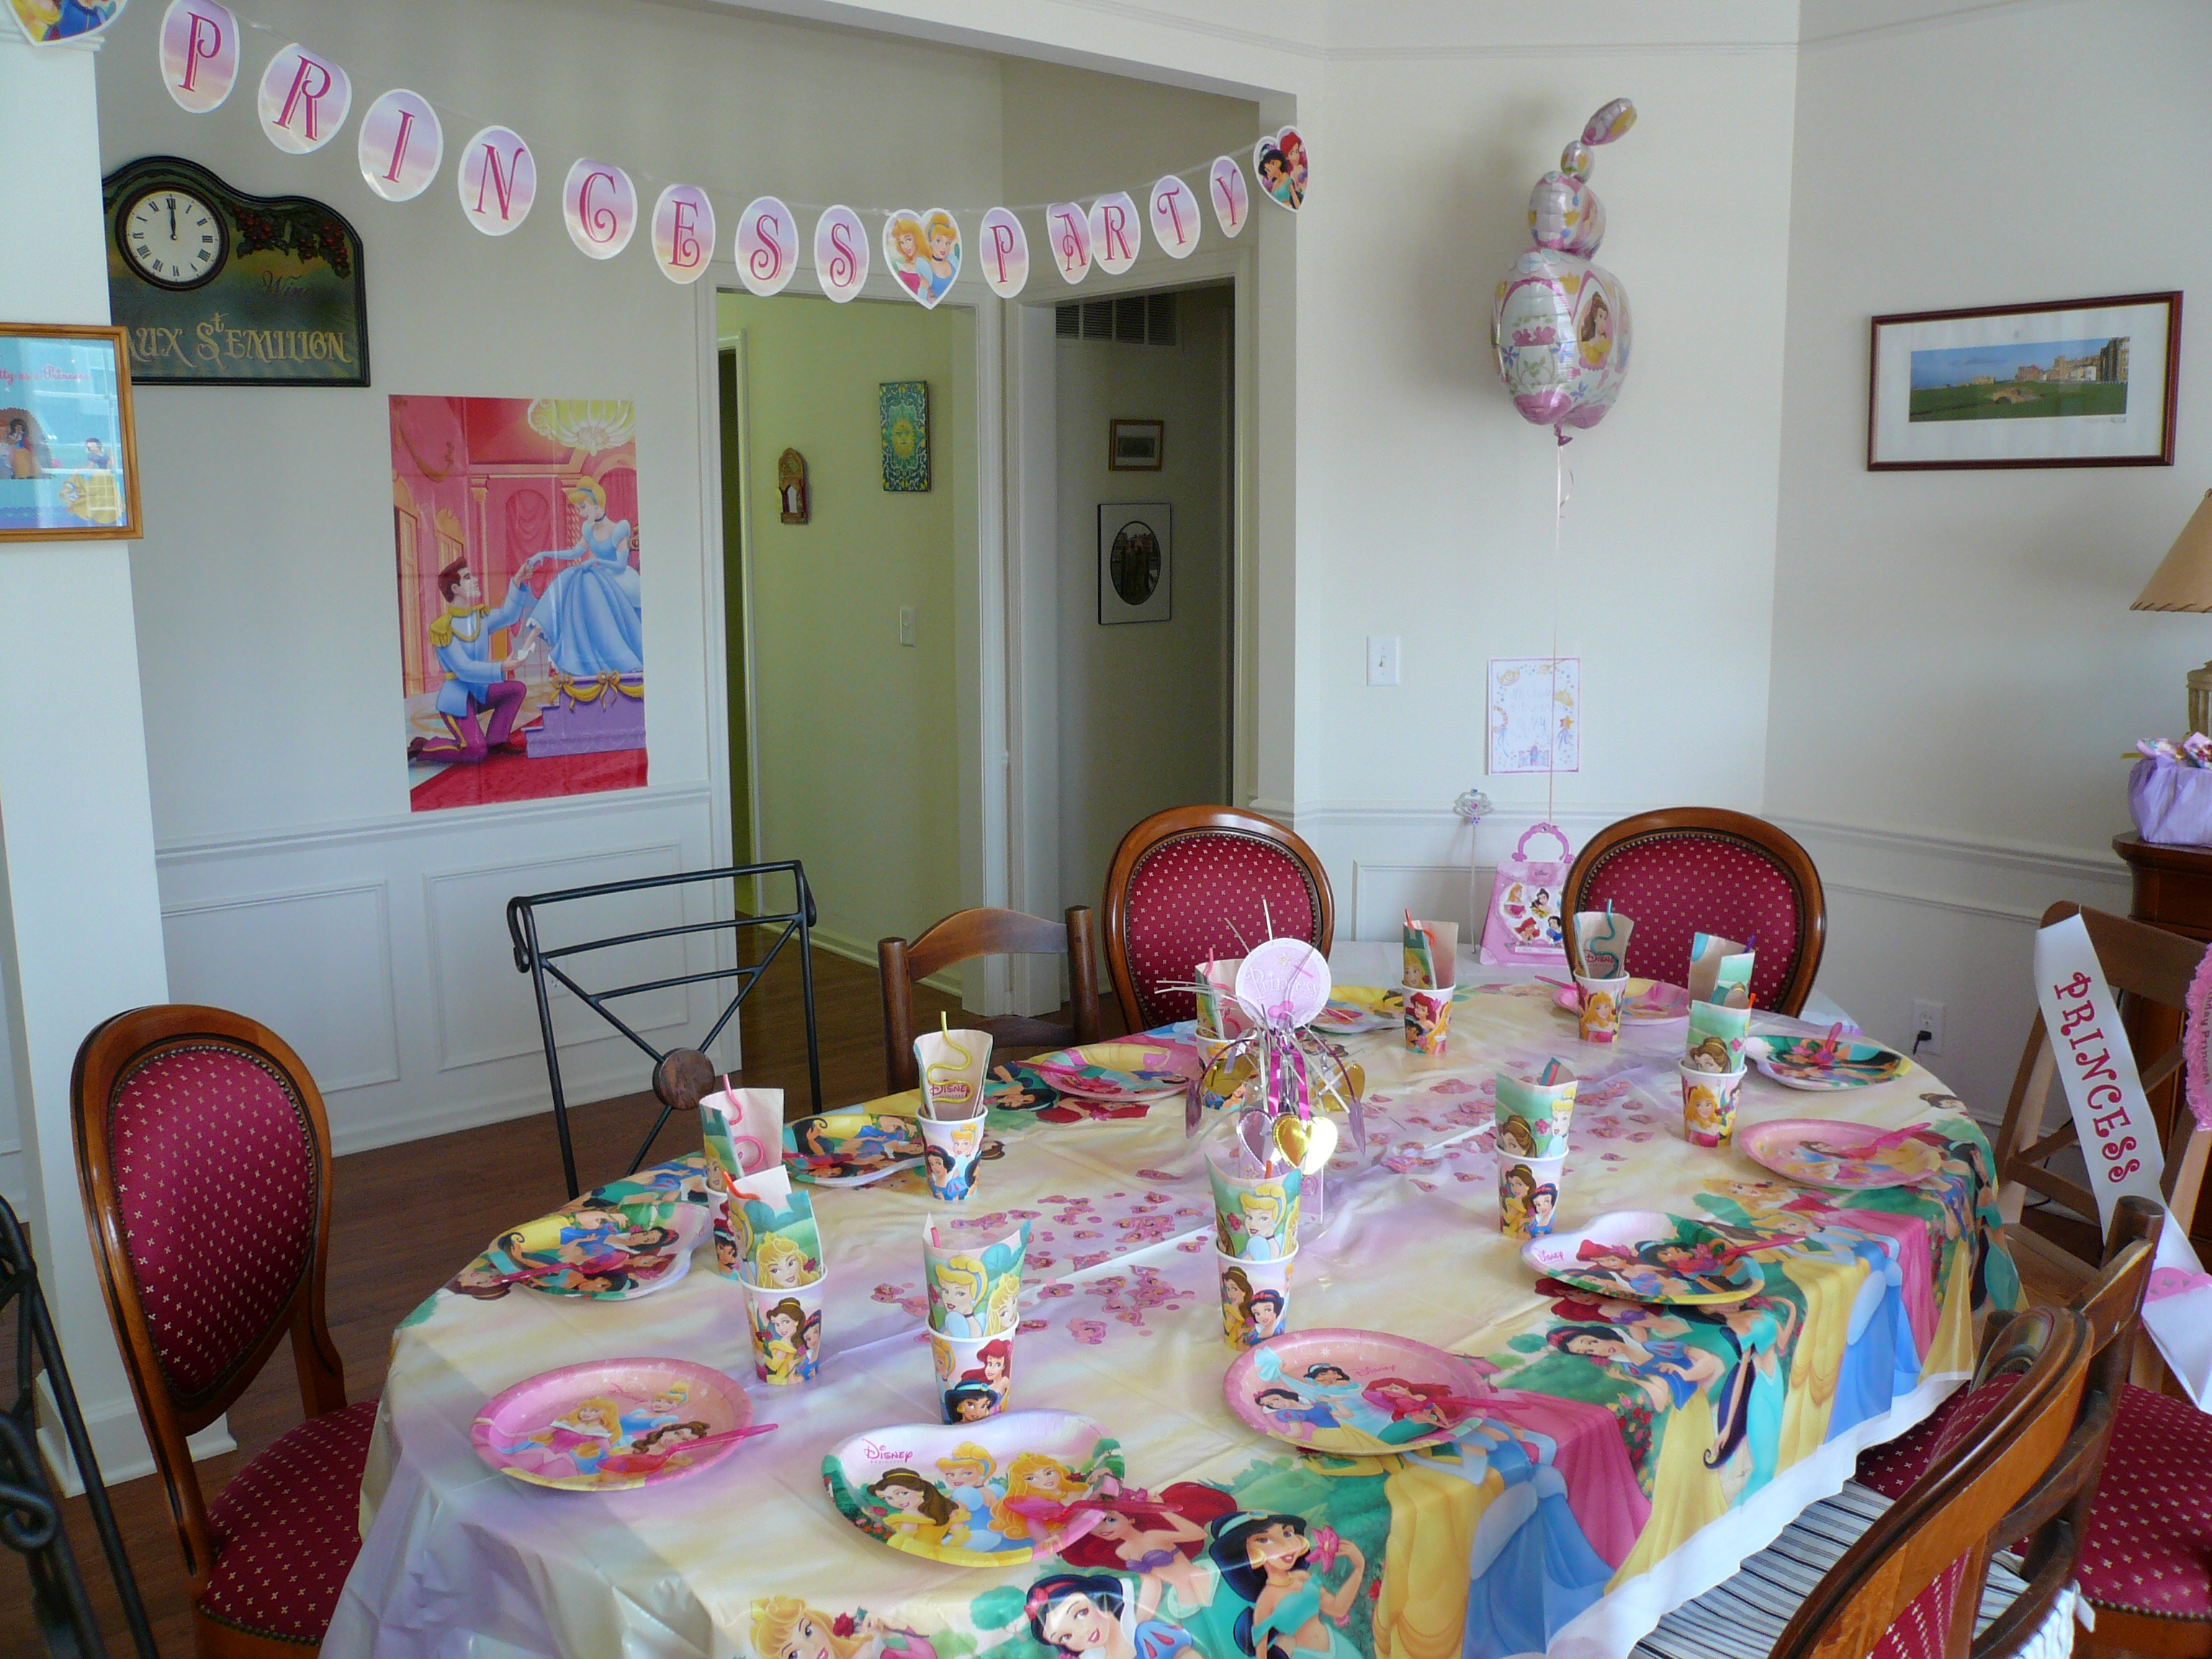 A Princess dress-up tea party!